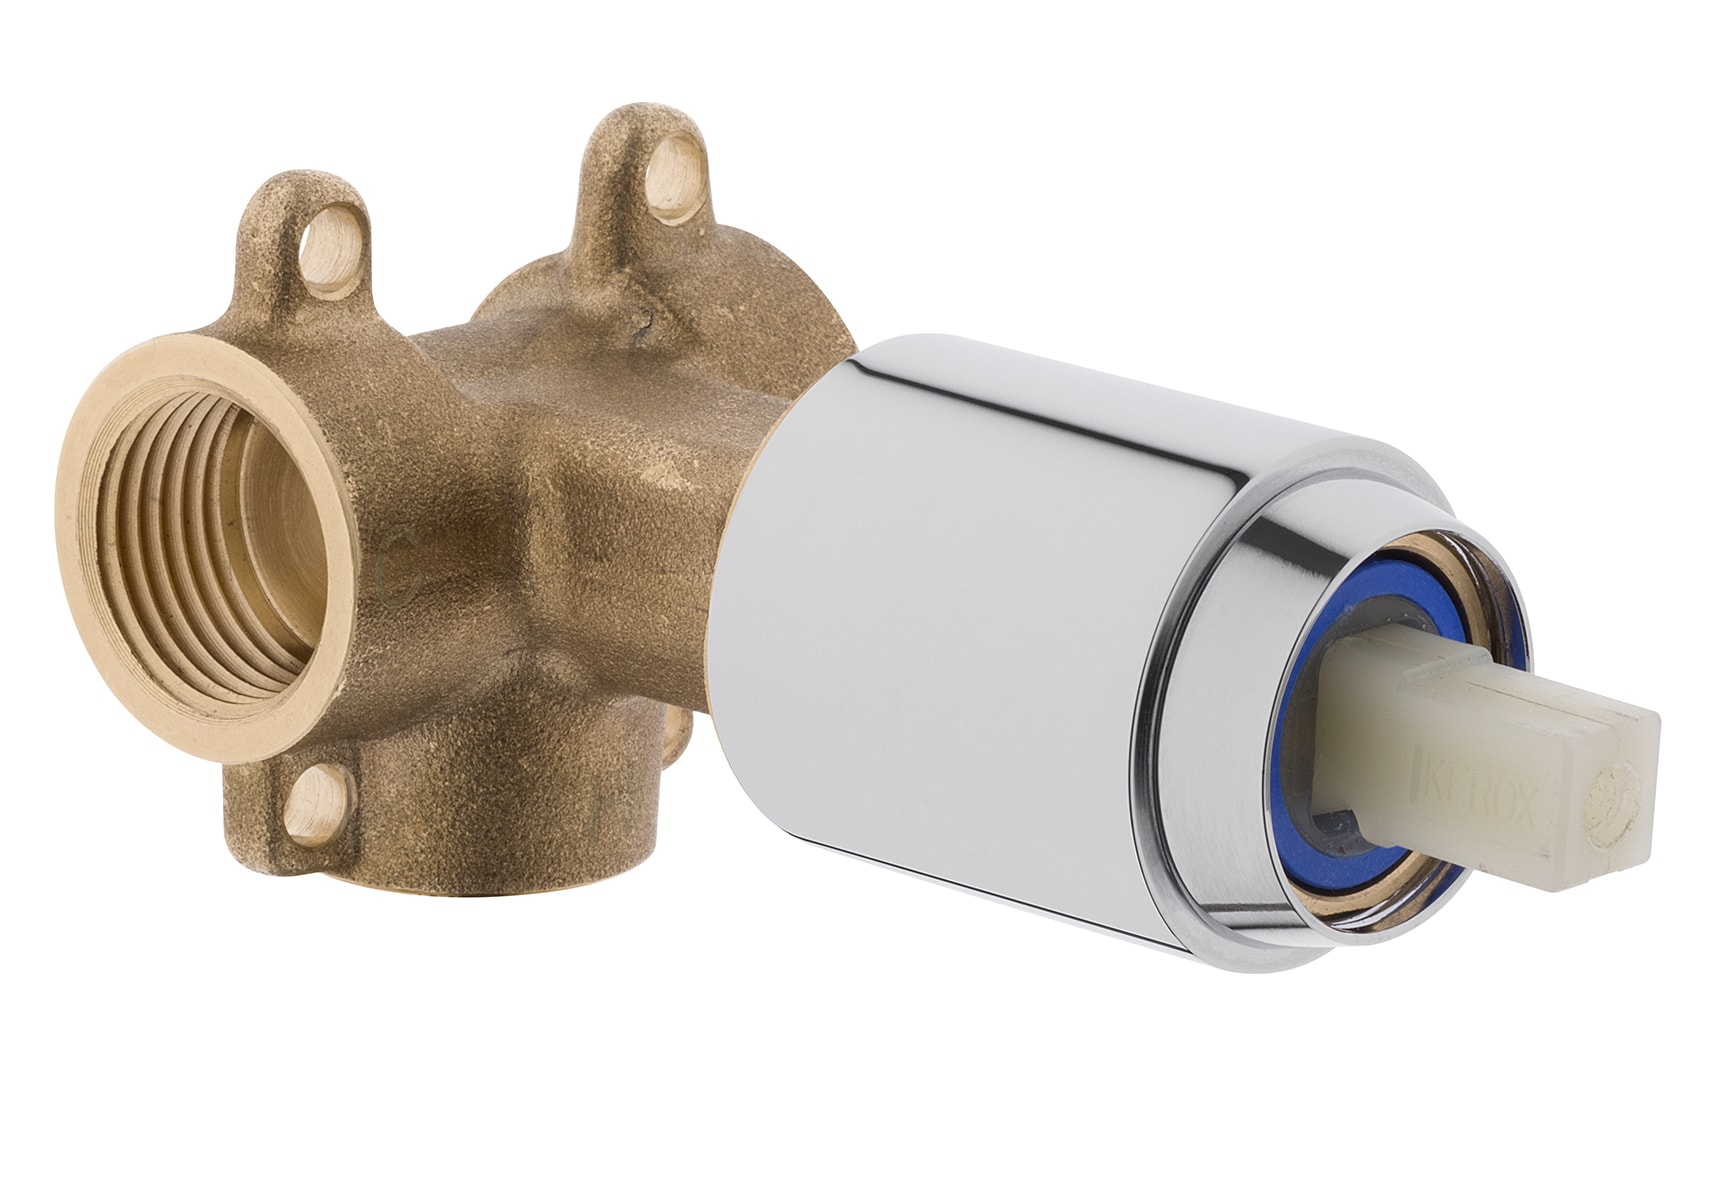 Built-in stop valve mix (concealed part)